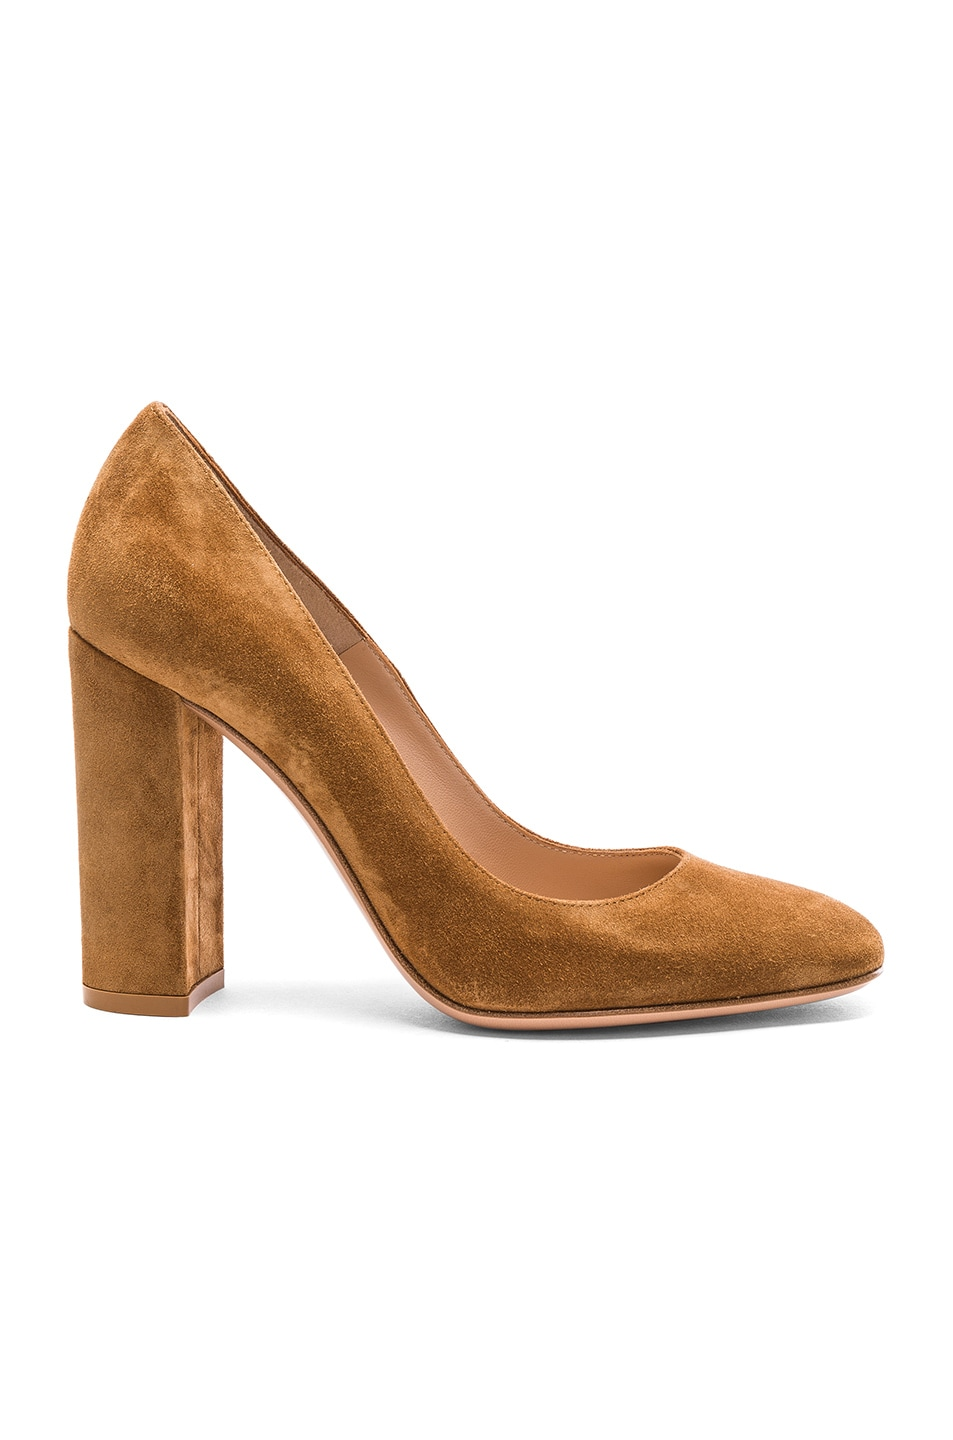 Image 1 of Gianvito Rossi Suede Chunky Heels in Almond